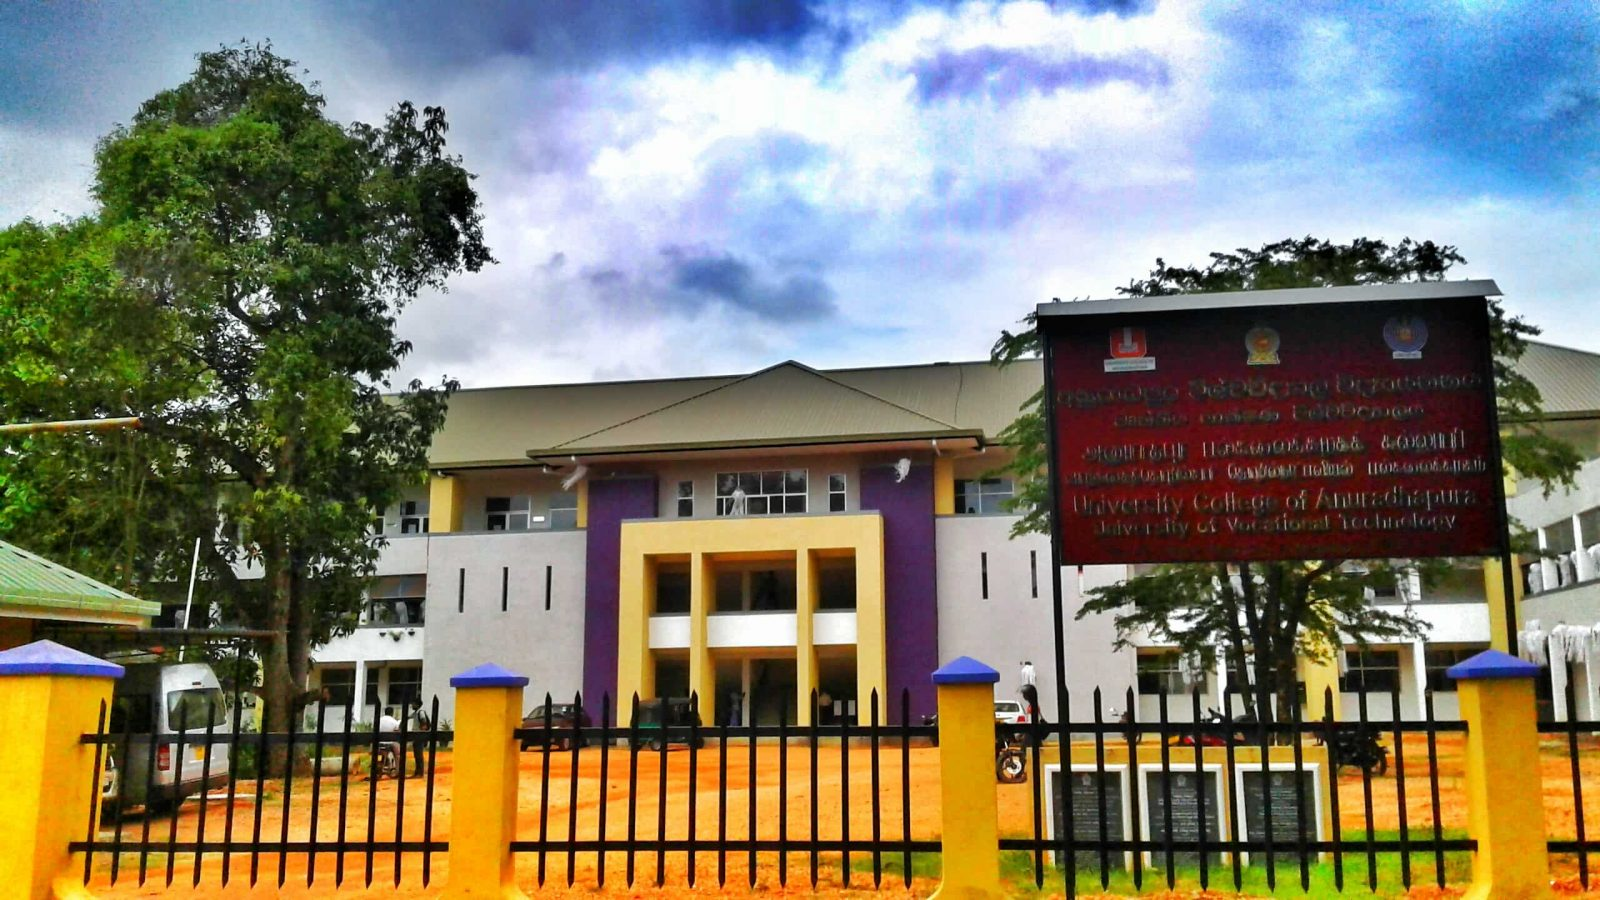 University College of Anuradhapura